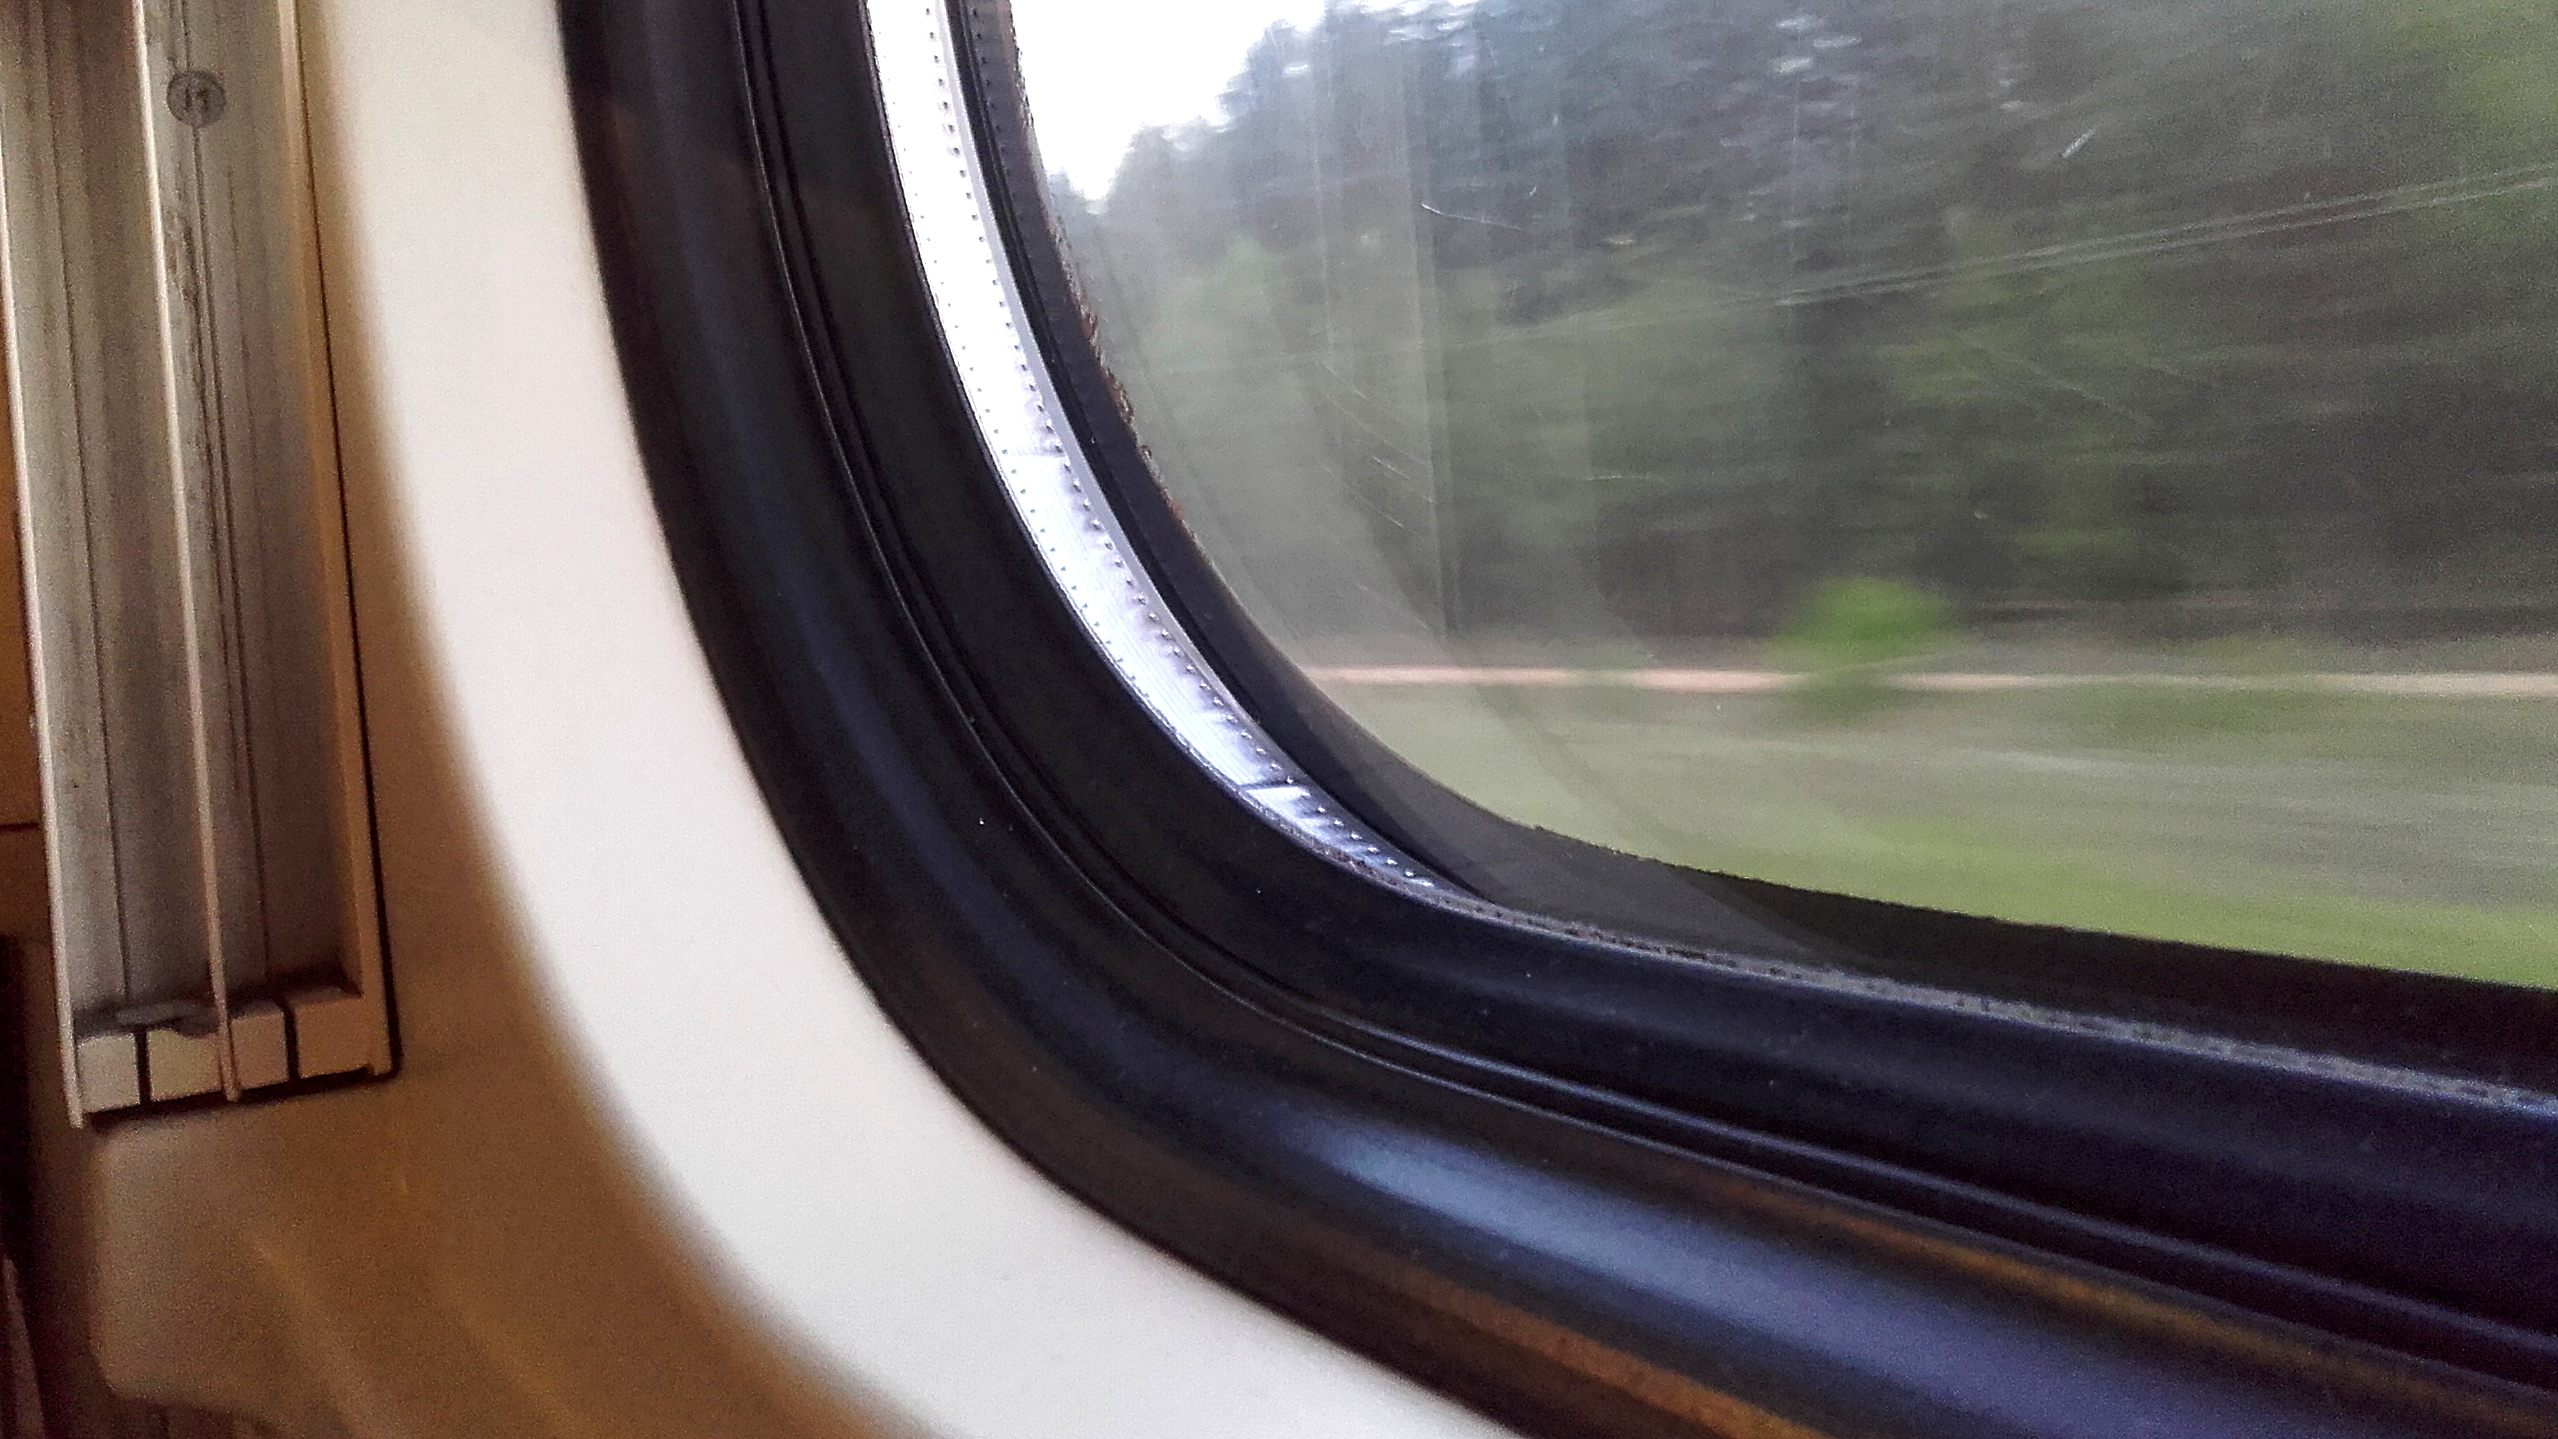 A train window with a forest flashing by. The kindness of strangers was needed when the train was delayed.